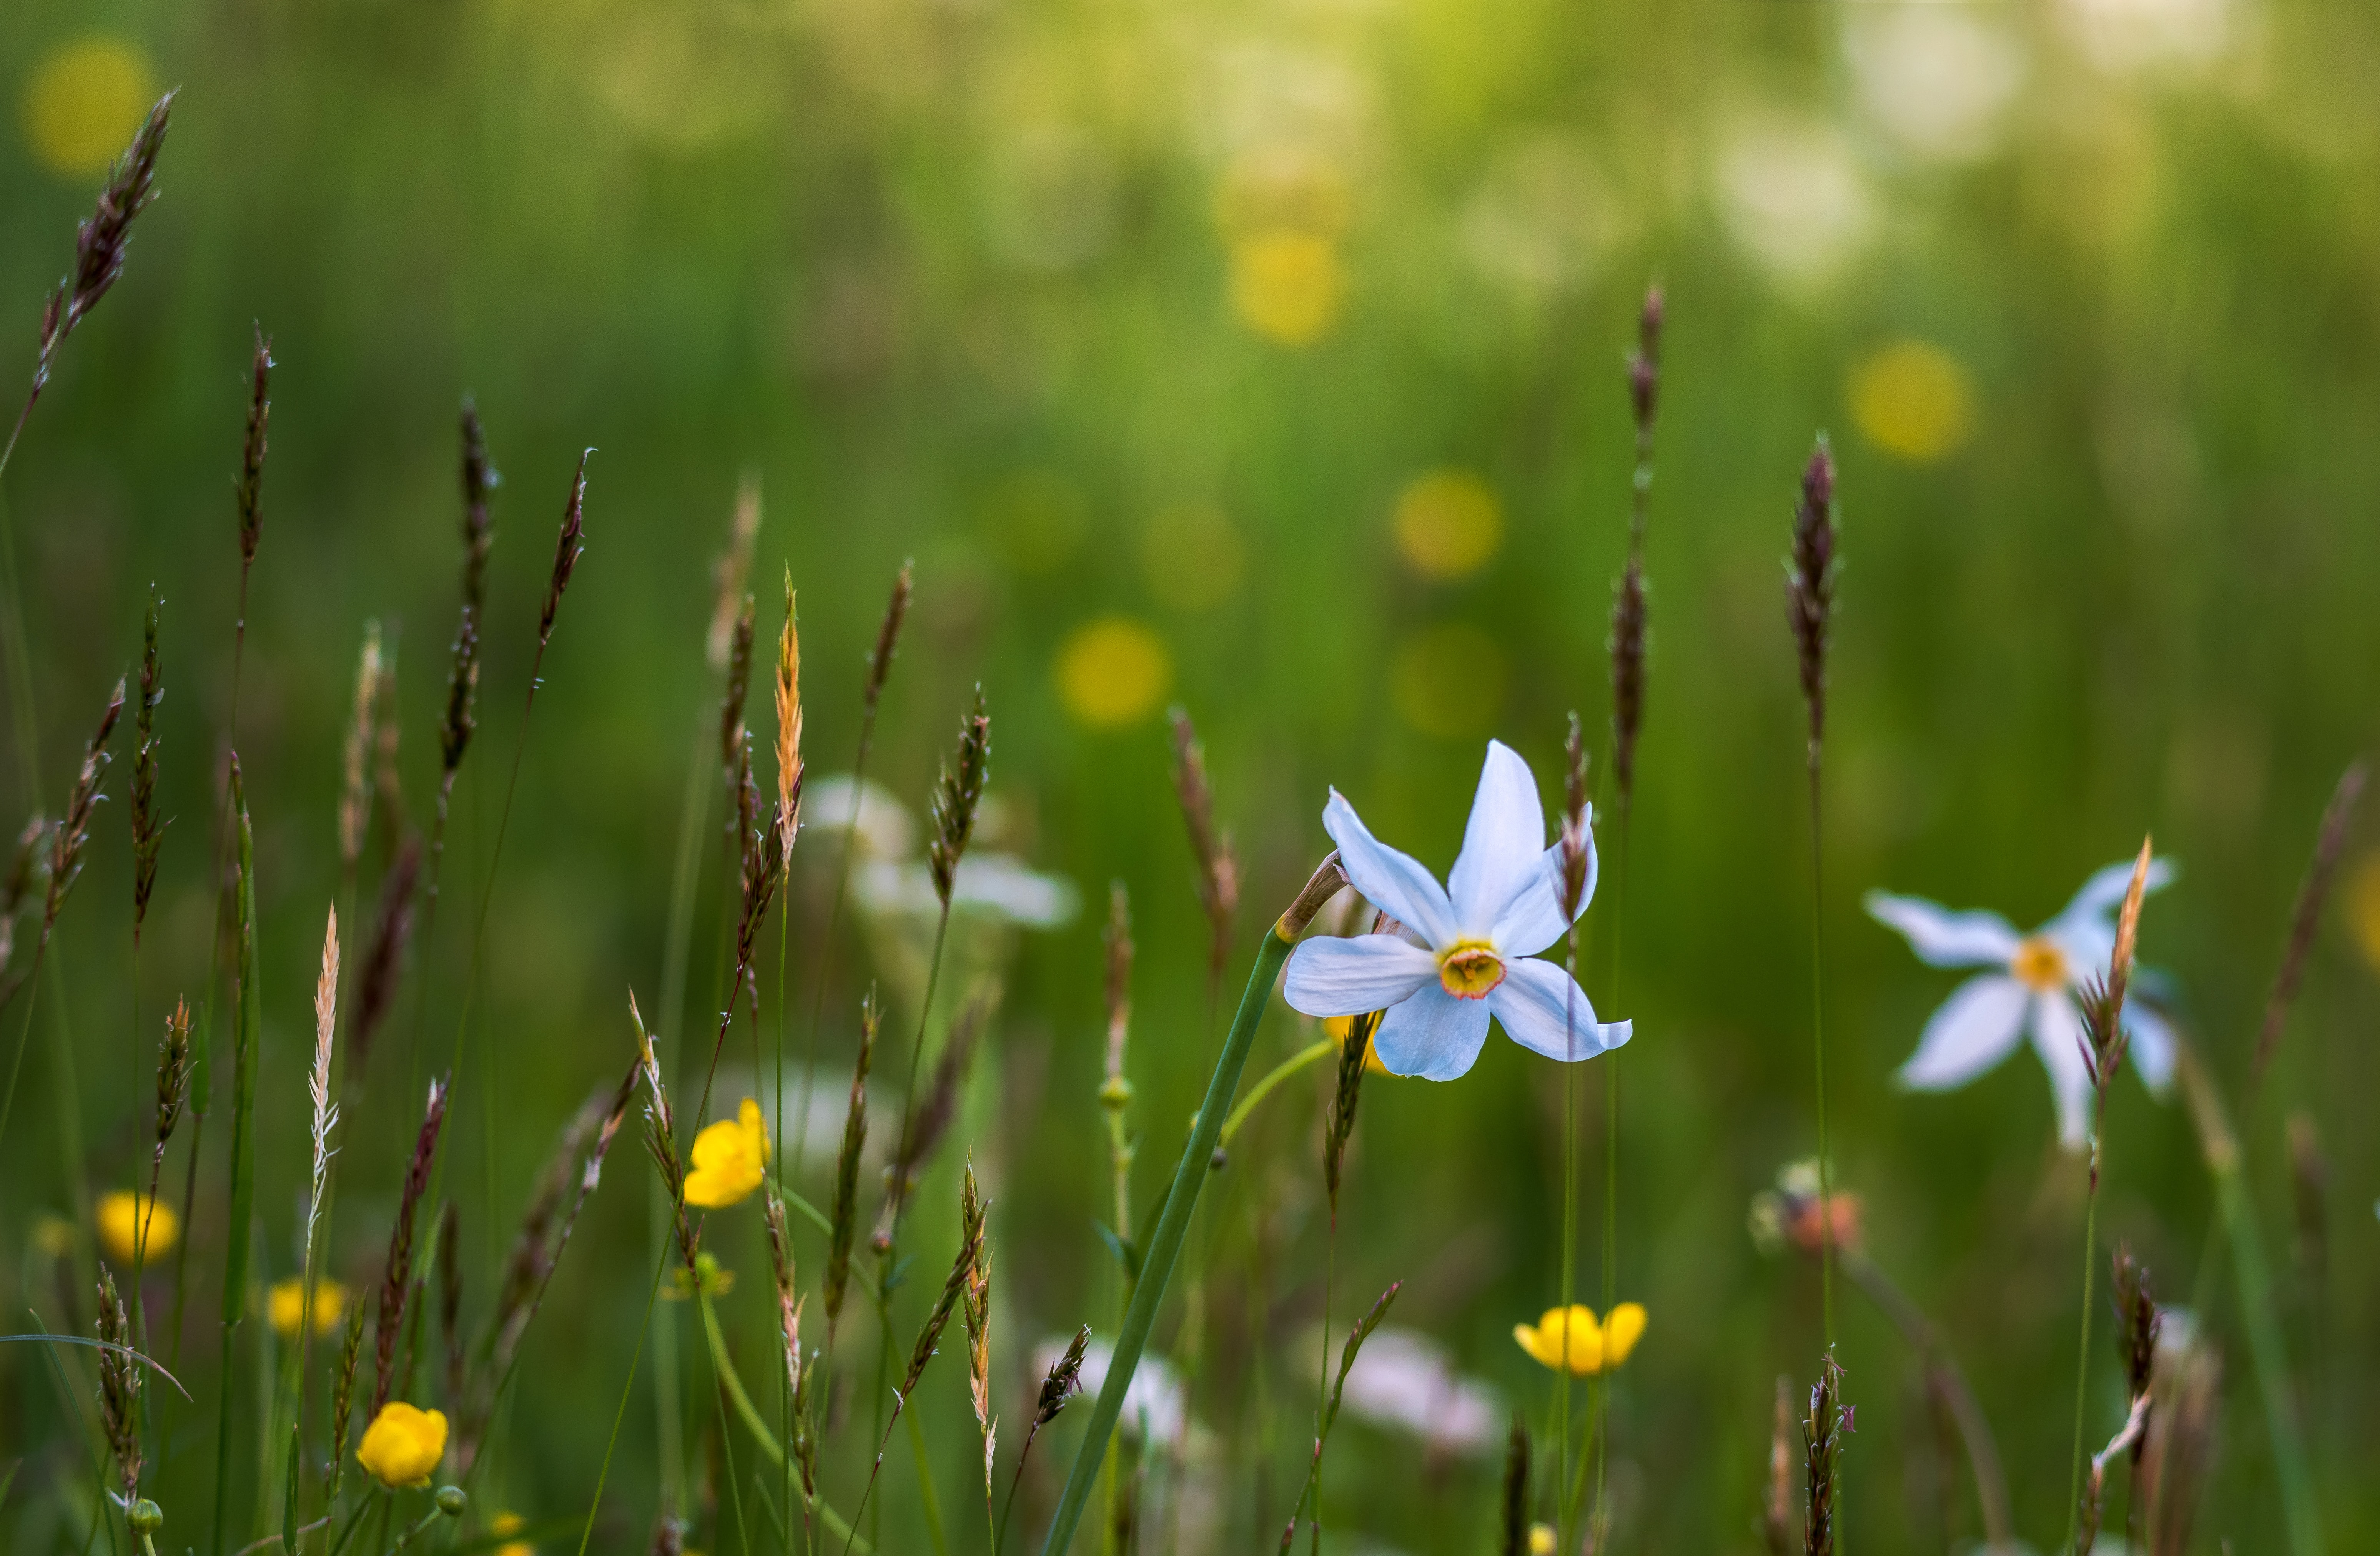 White narcissus flowers among grass and yellow buttercups